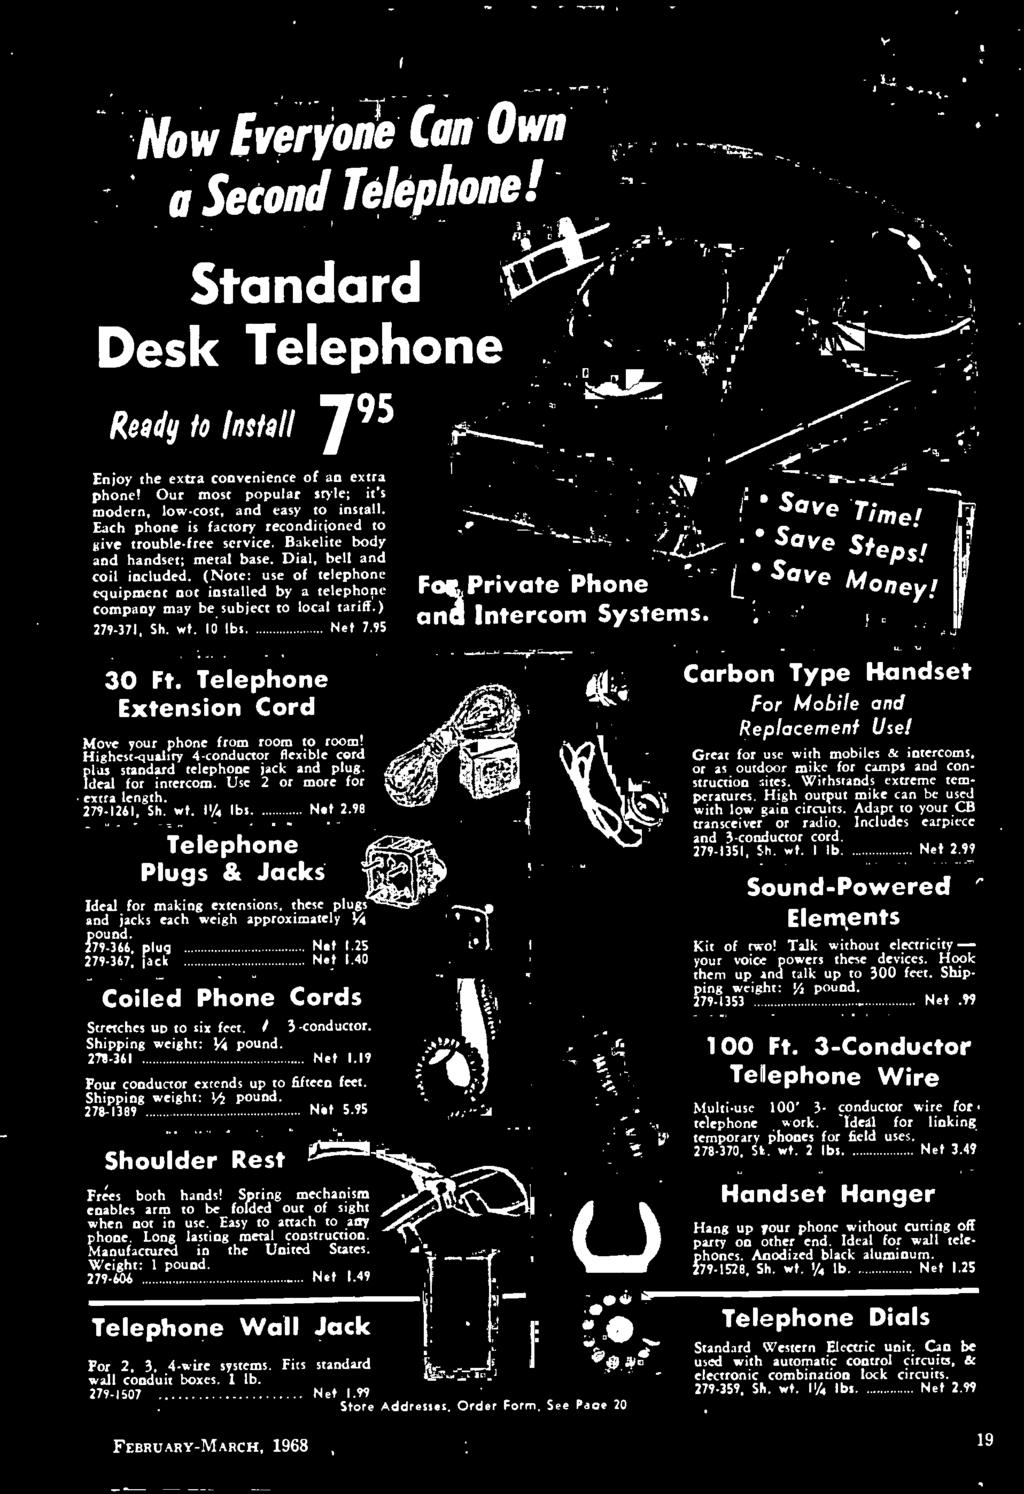 Dio Tu How To Get On The Swl Bandwagon Two Great Scope Crazy Telephone Wiring India 1 Tube Dc Radio Kit 395 No Battery Operated Learn Theory And Build A Real Working Equipped With Sturdy Perf Board Construction